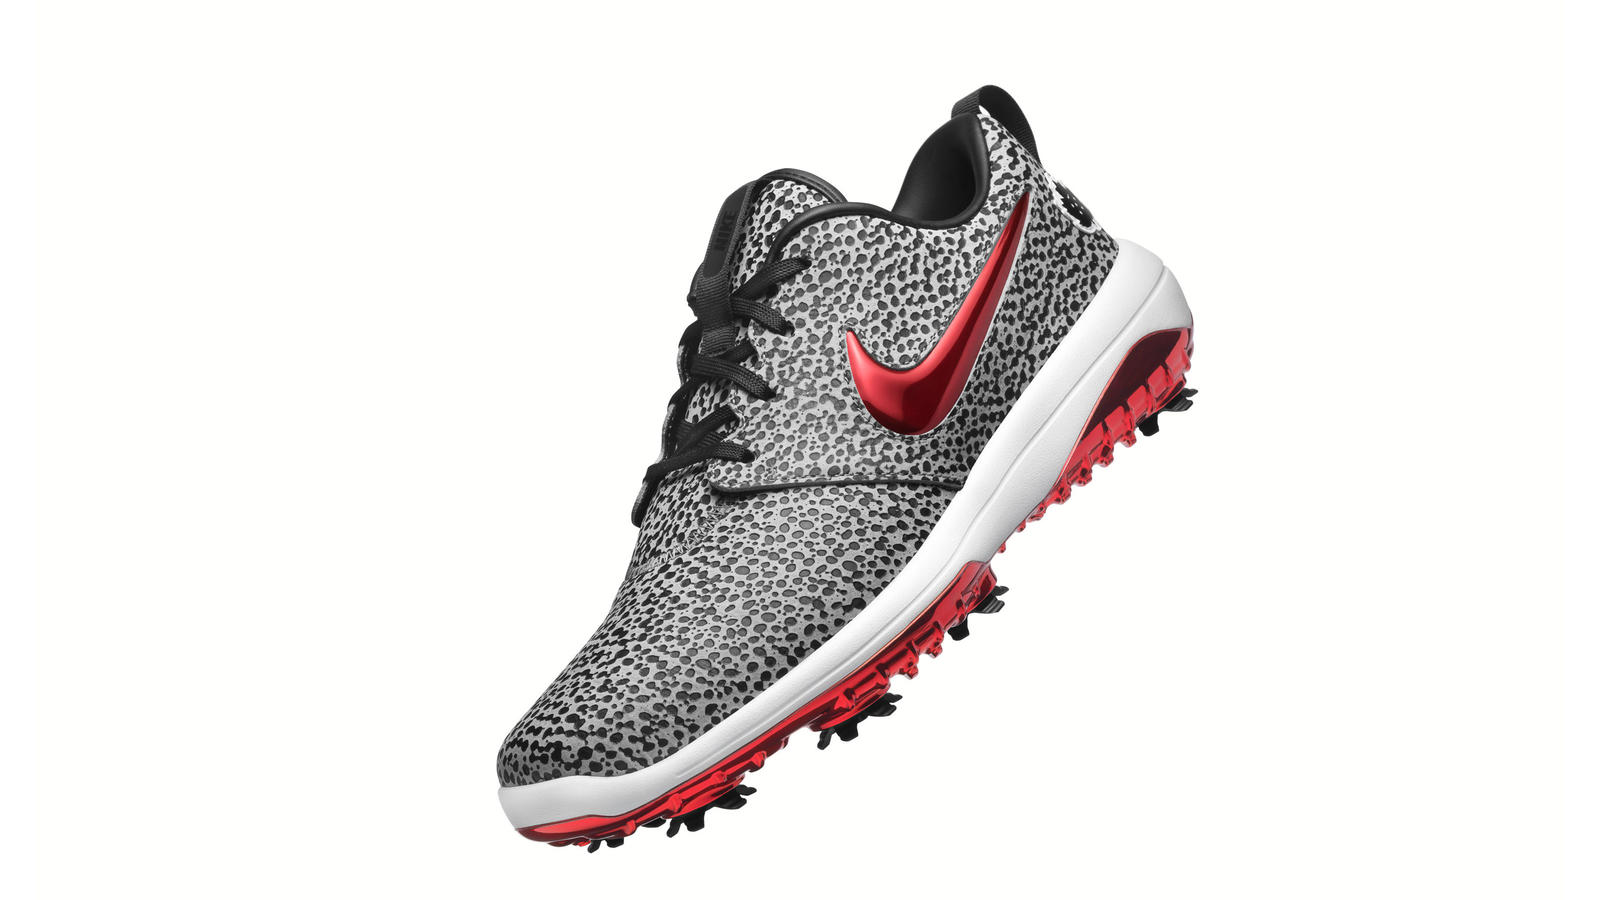 Nike Golf Summer 2019 Safari Bred Pack: Official Images and Relase Date 2